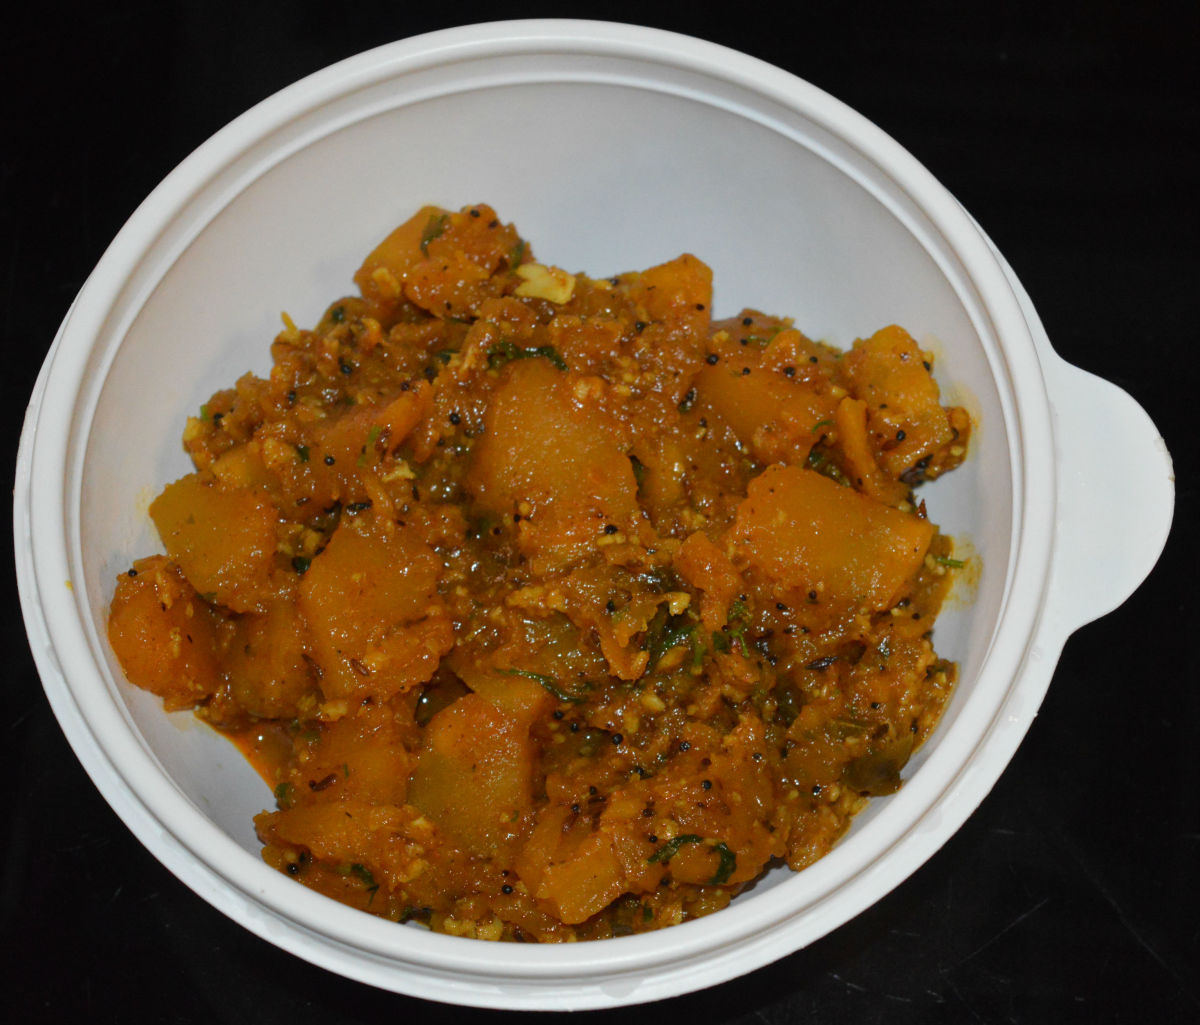 Transfer it to a serving bowl. Serve it with Indian flatbread or steamed rice. Enjoy the combo!